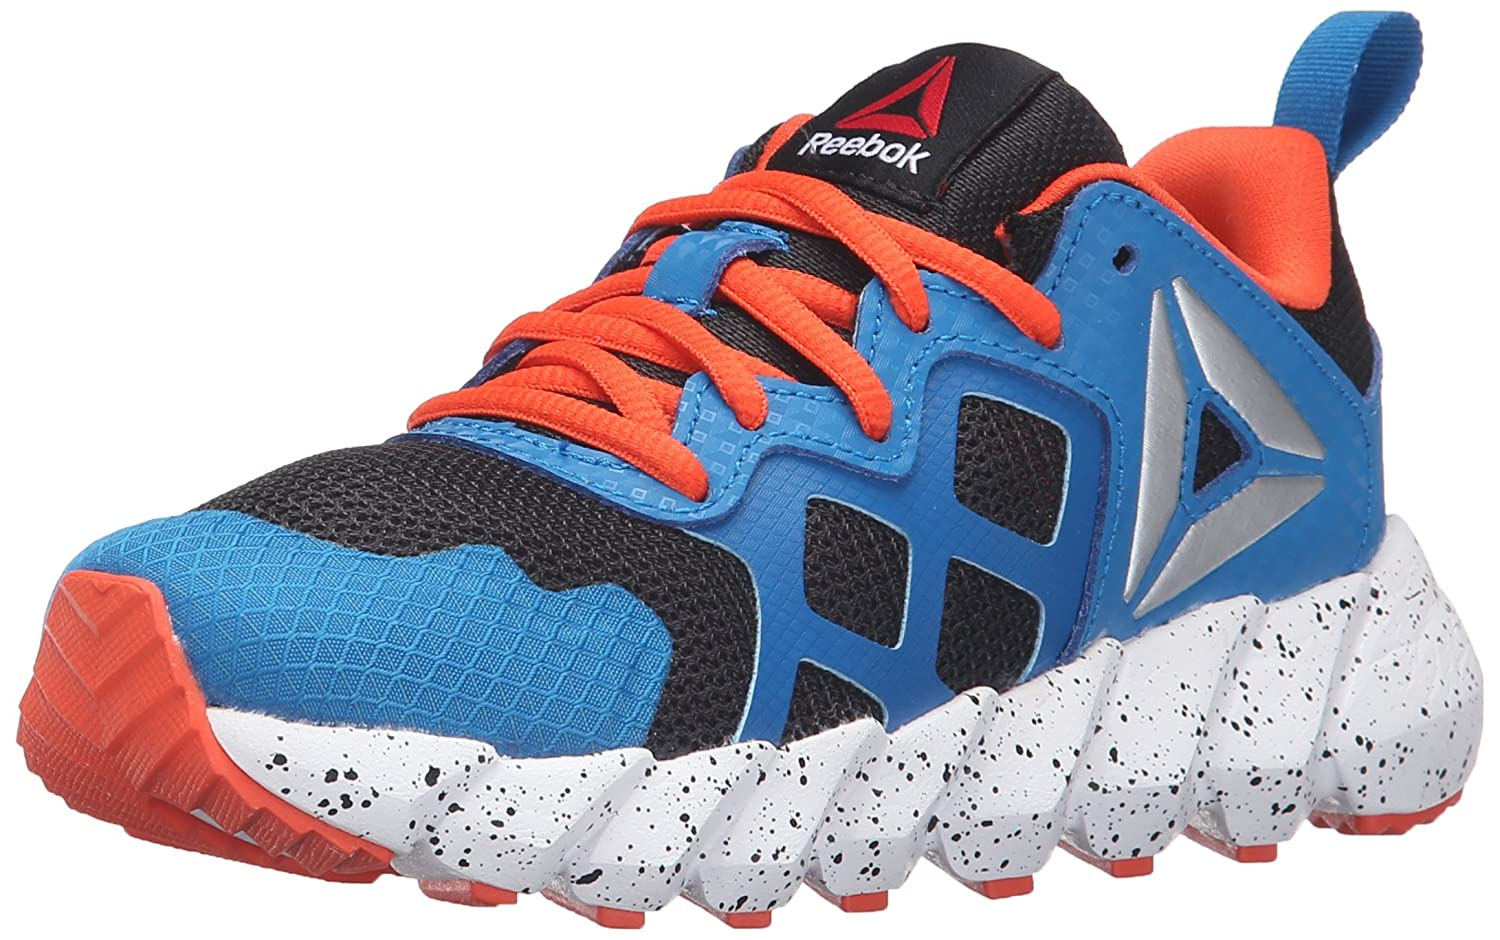 Reebok Exocage Athletic Track Shoe (Little Kid/Big Kid) EXOCAGE ATHLETIC - K